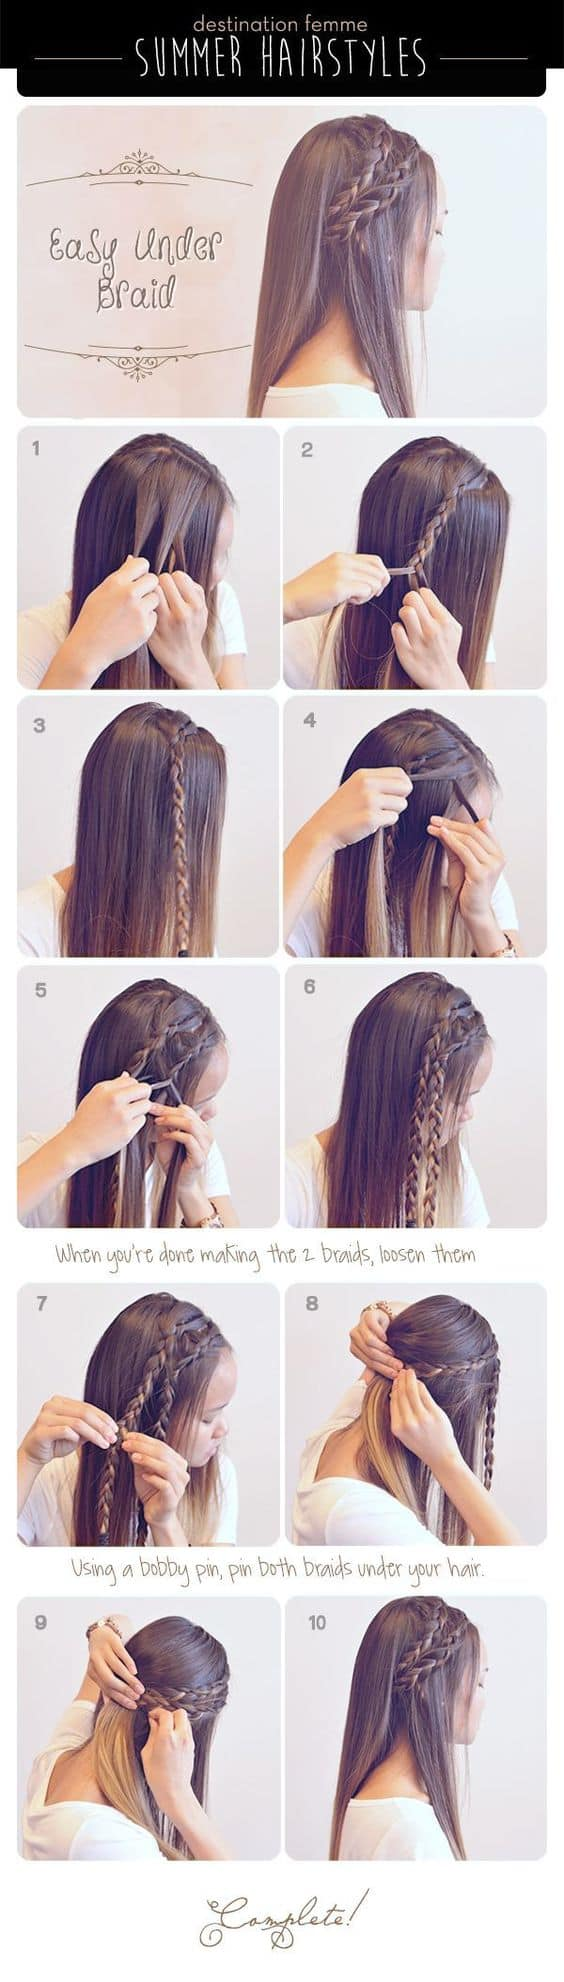 Easy Braided Hairstyles for a Party